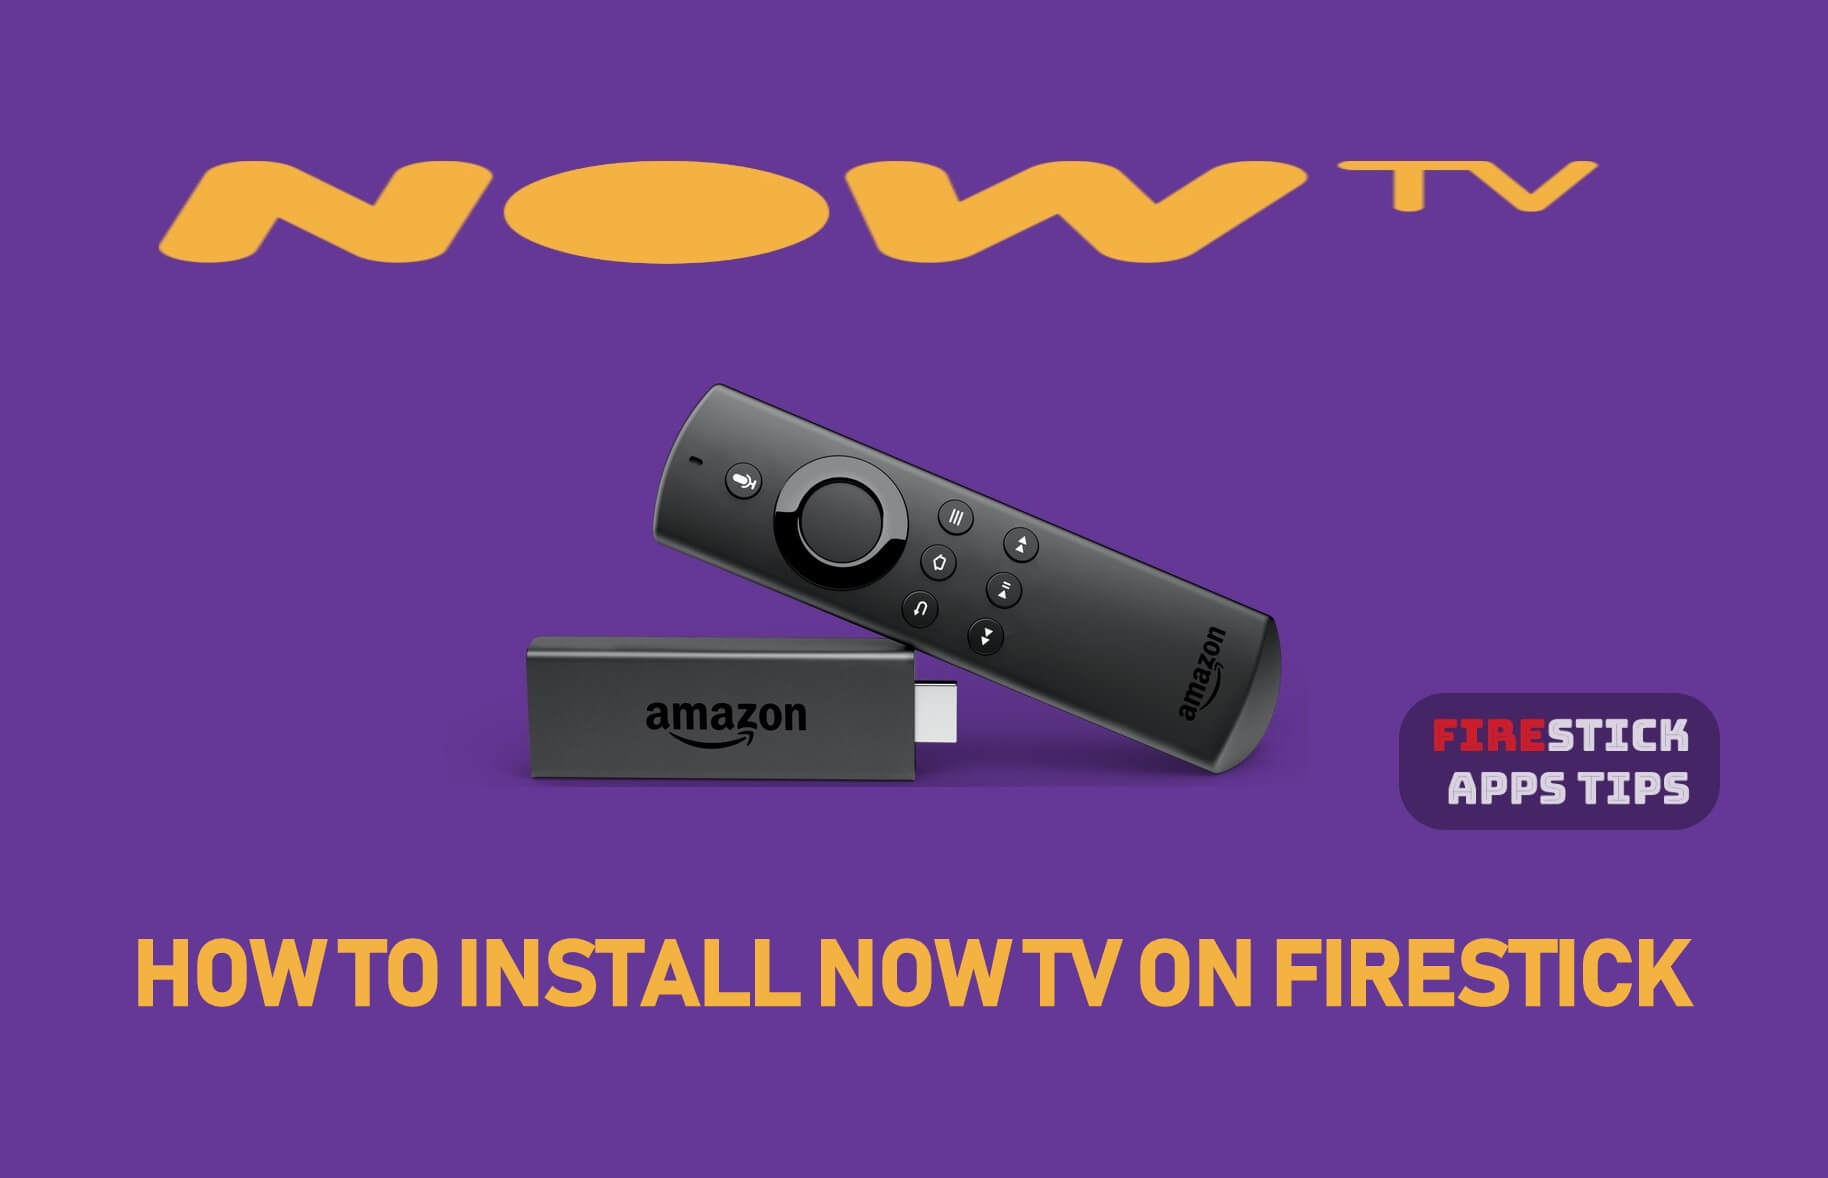 Install Now TV on Firestick